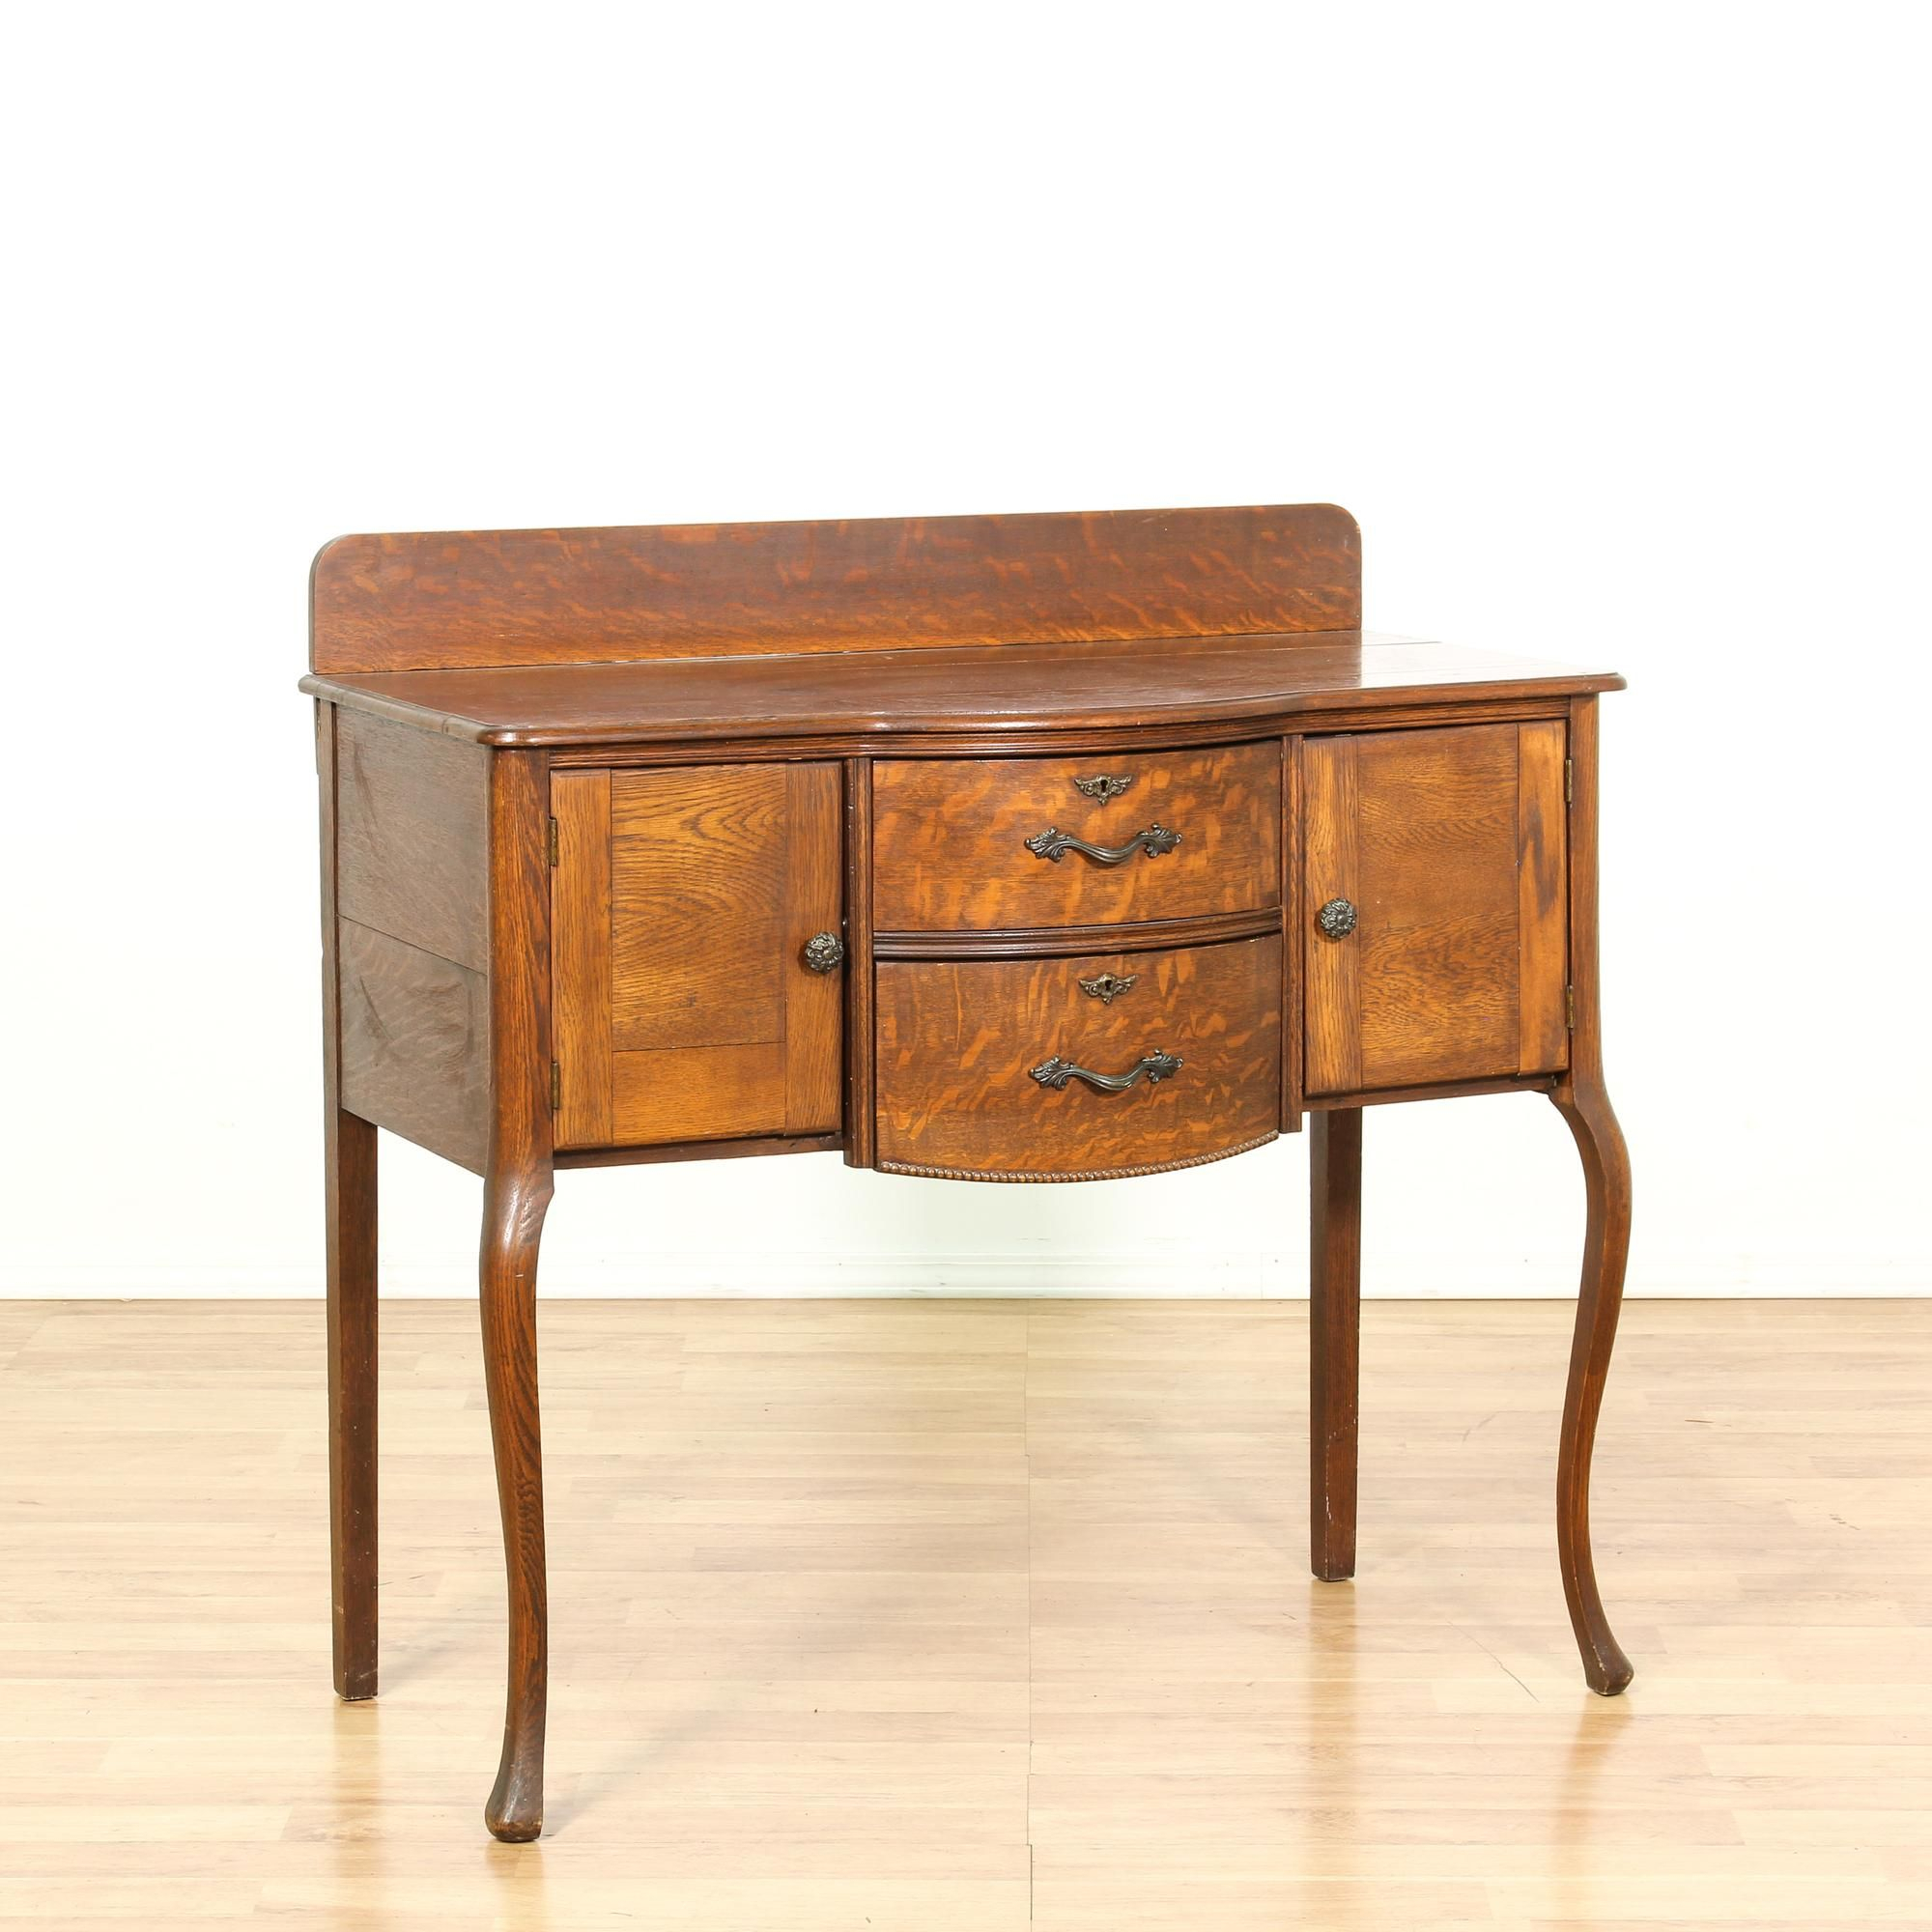 This Antique Sideboard Buffet Is Featured In A Solid Wood Intended For 2 Shelf Buffets With Curved Legs (View 28 of 30)